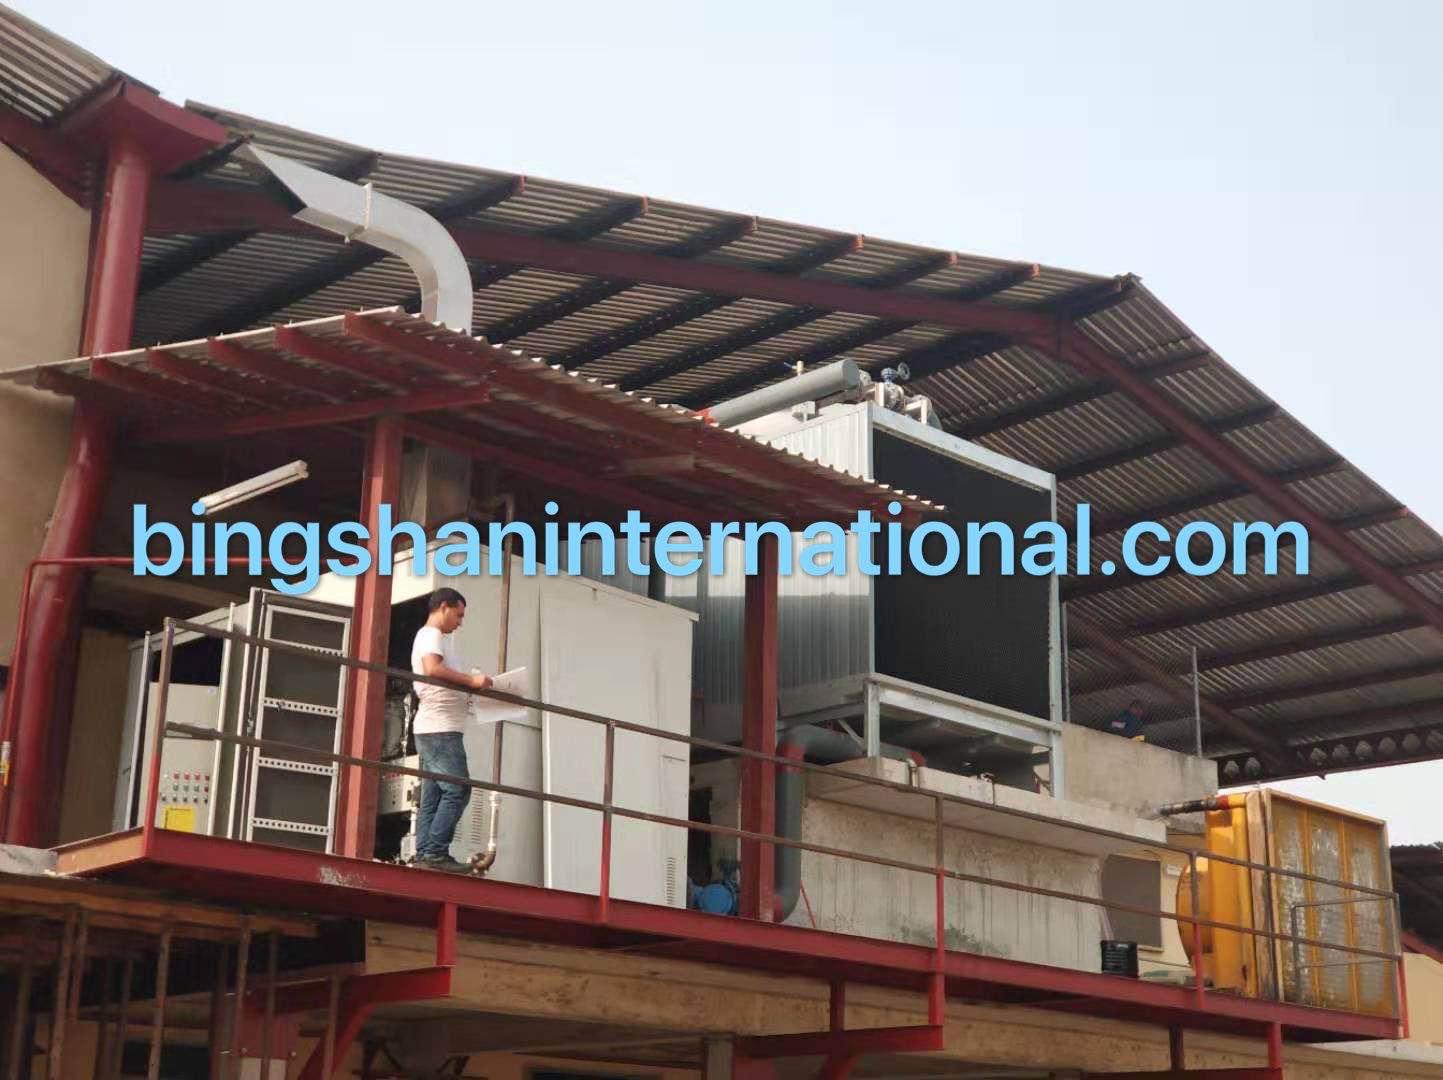 direct fired Libr absorption chiller